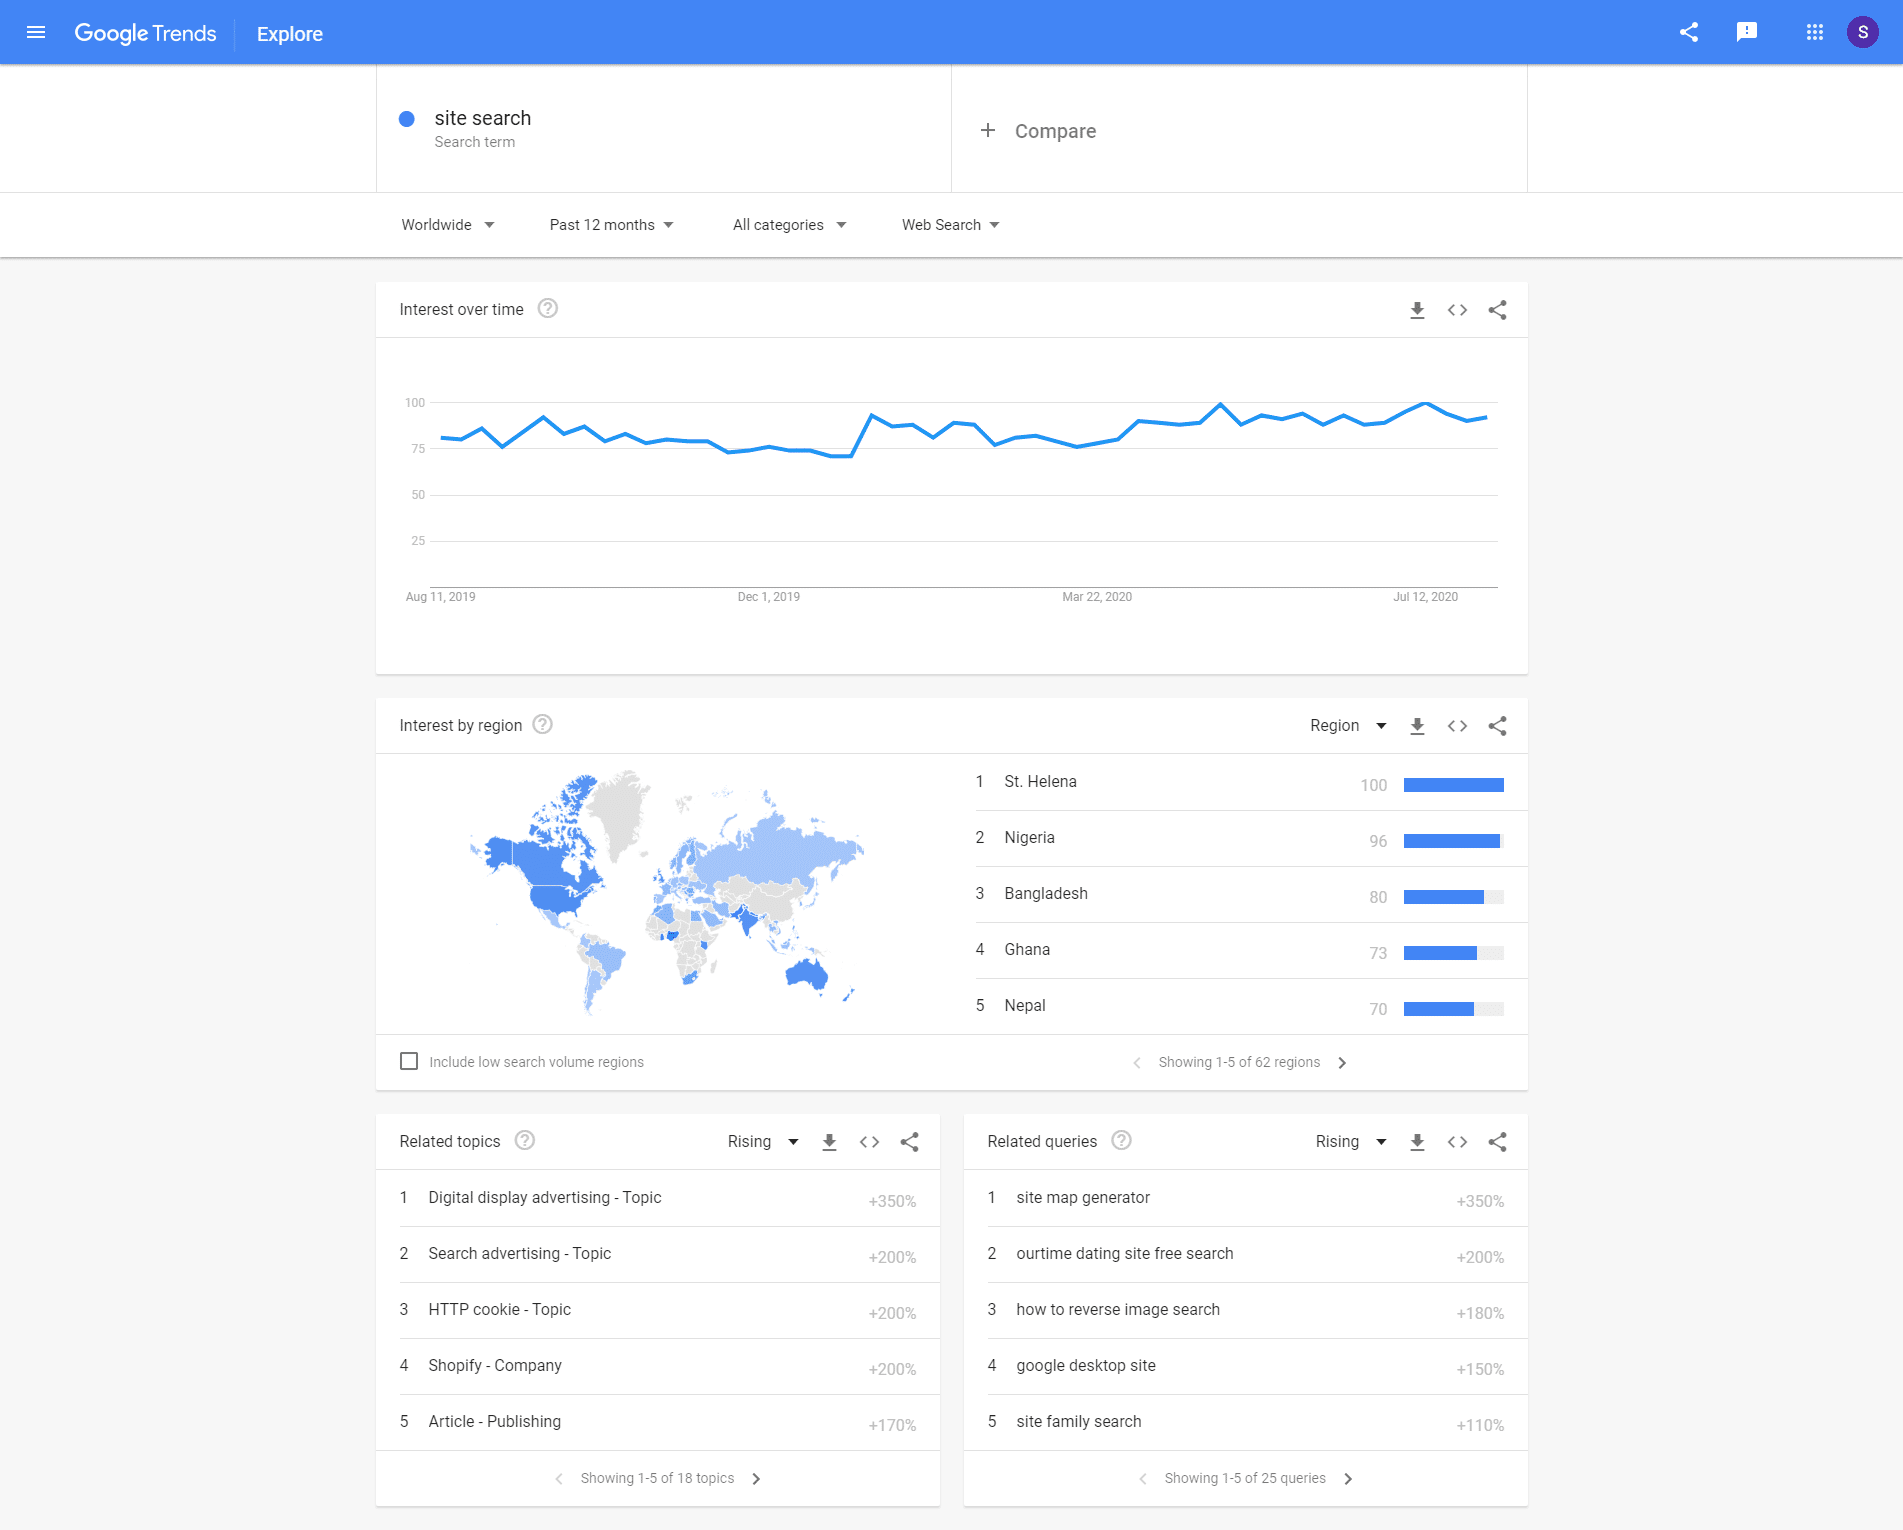 Google trends reports